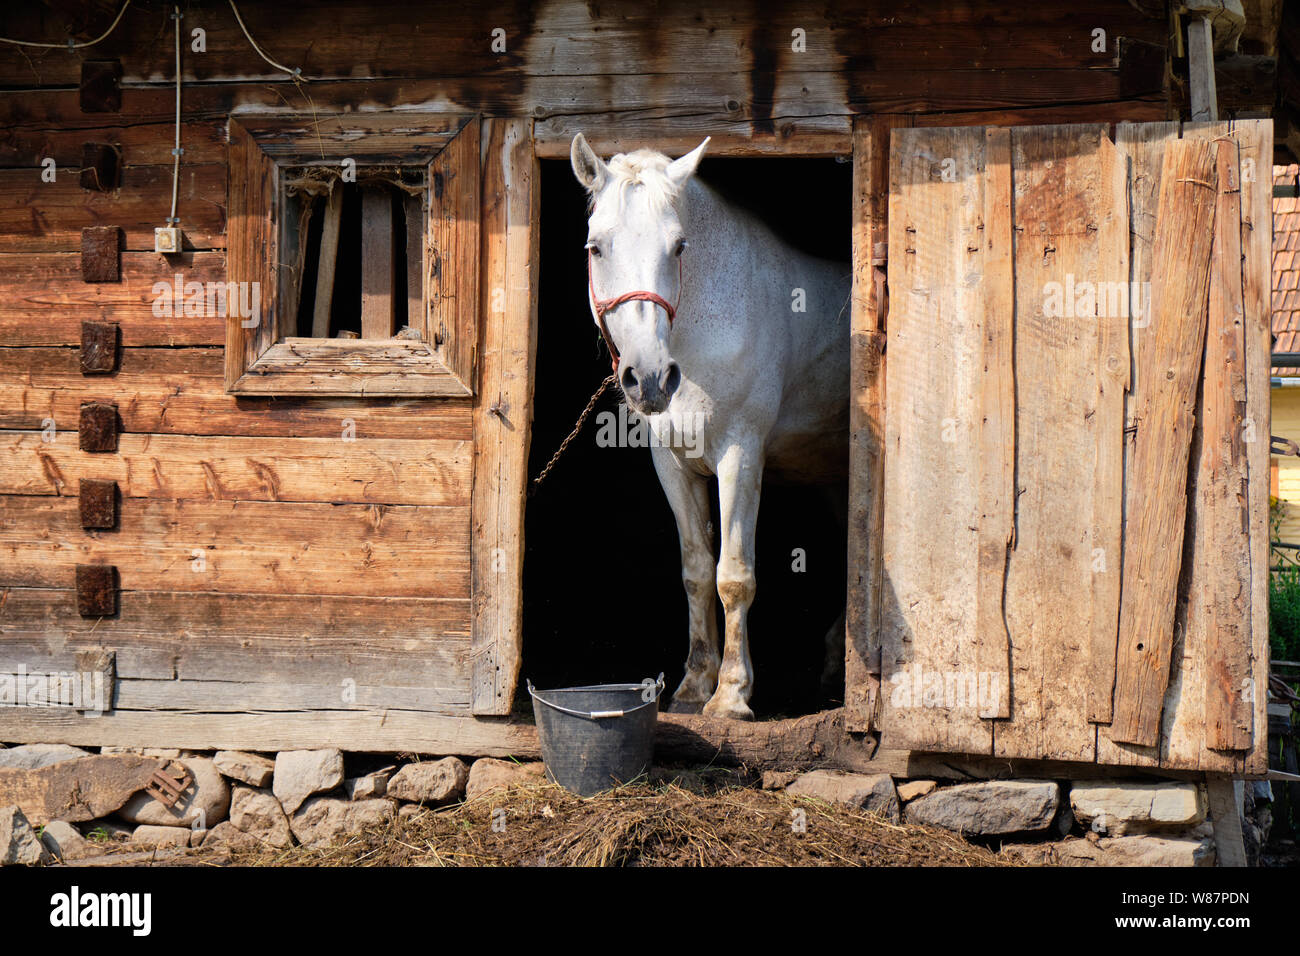 farm-white-horse-front-side-framed-in-old-rustic-stable-door-sticking-head-out-and-looking-W87PDN.jpg